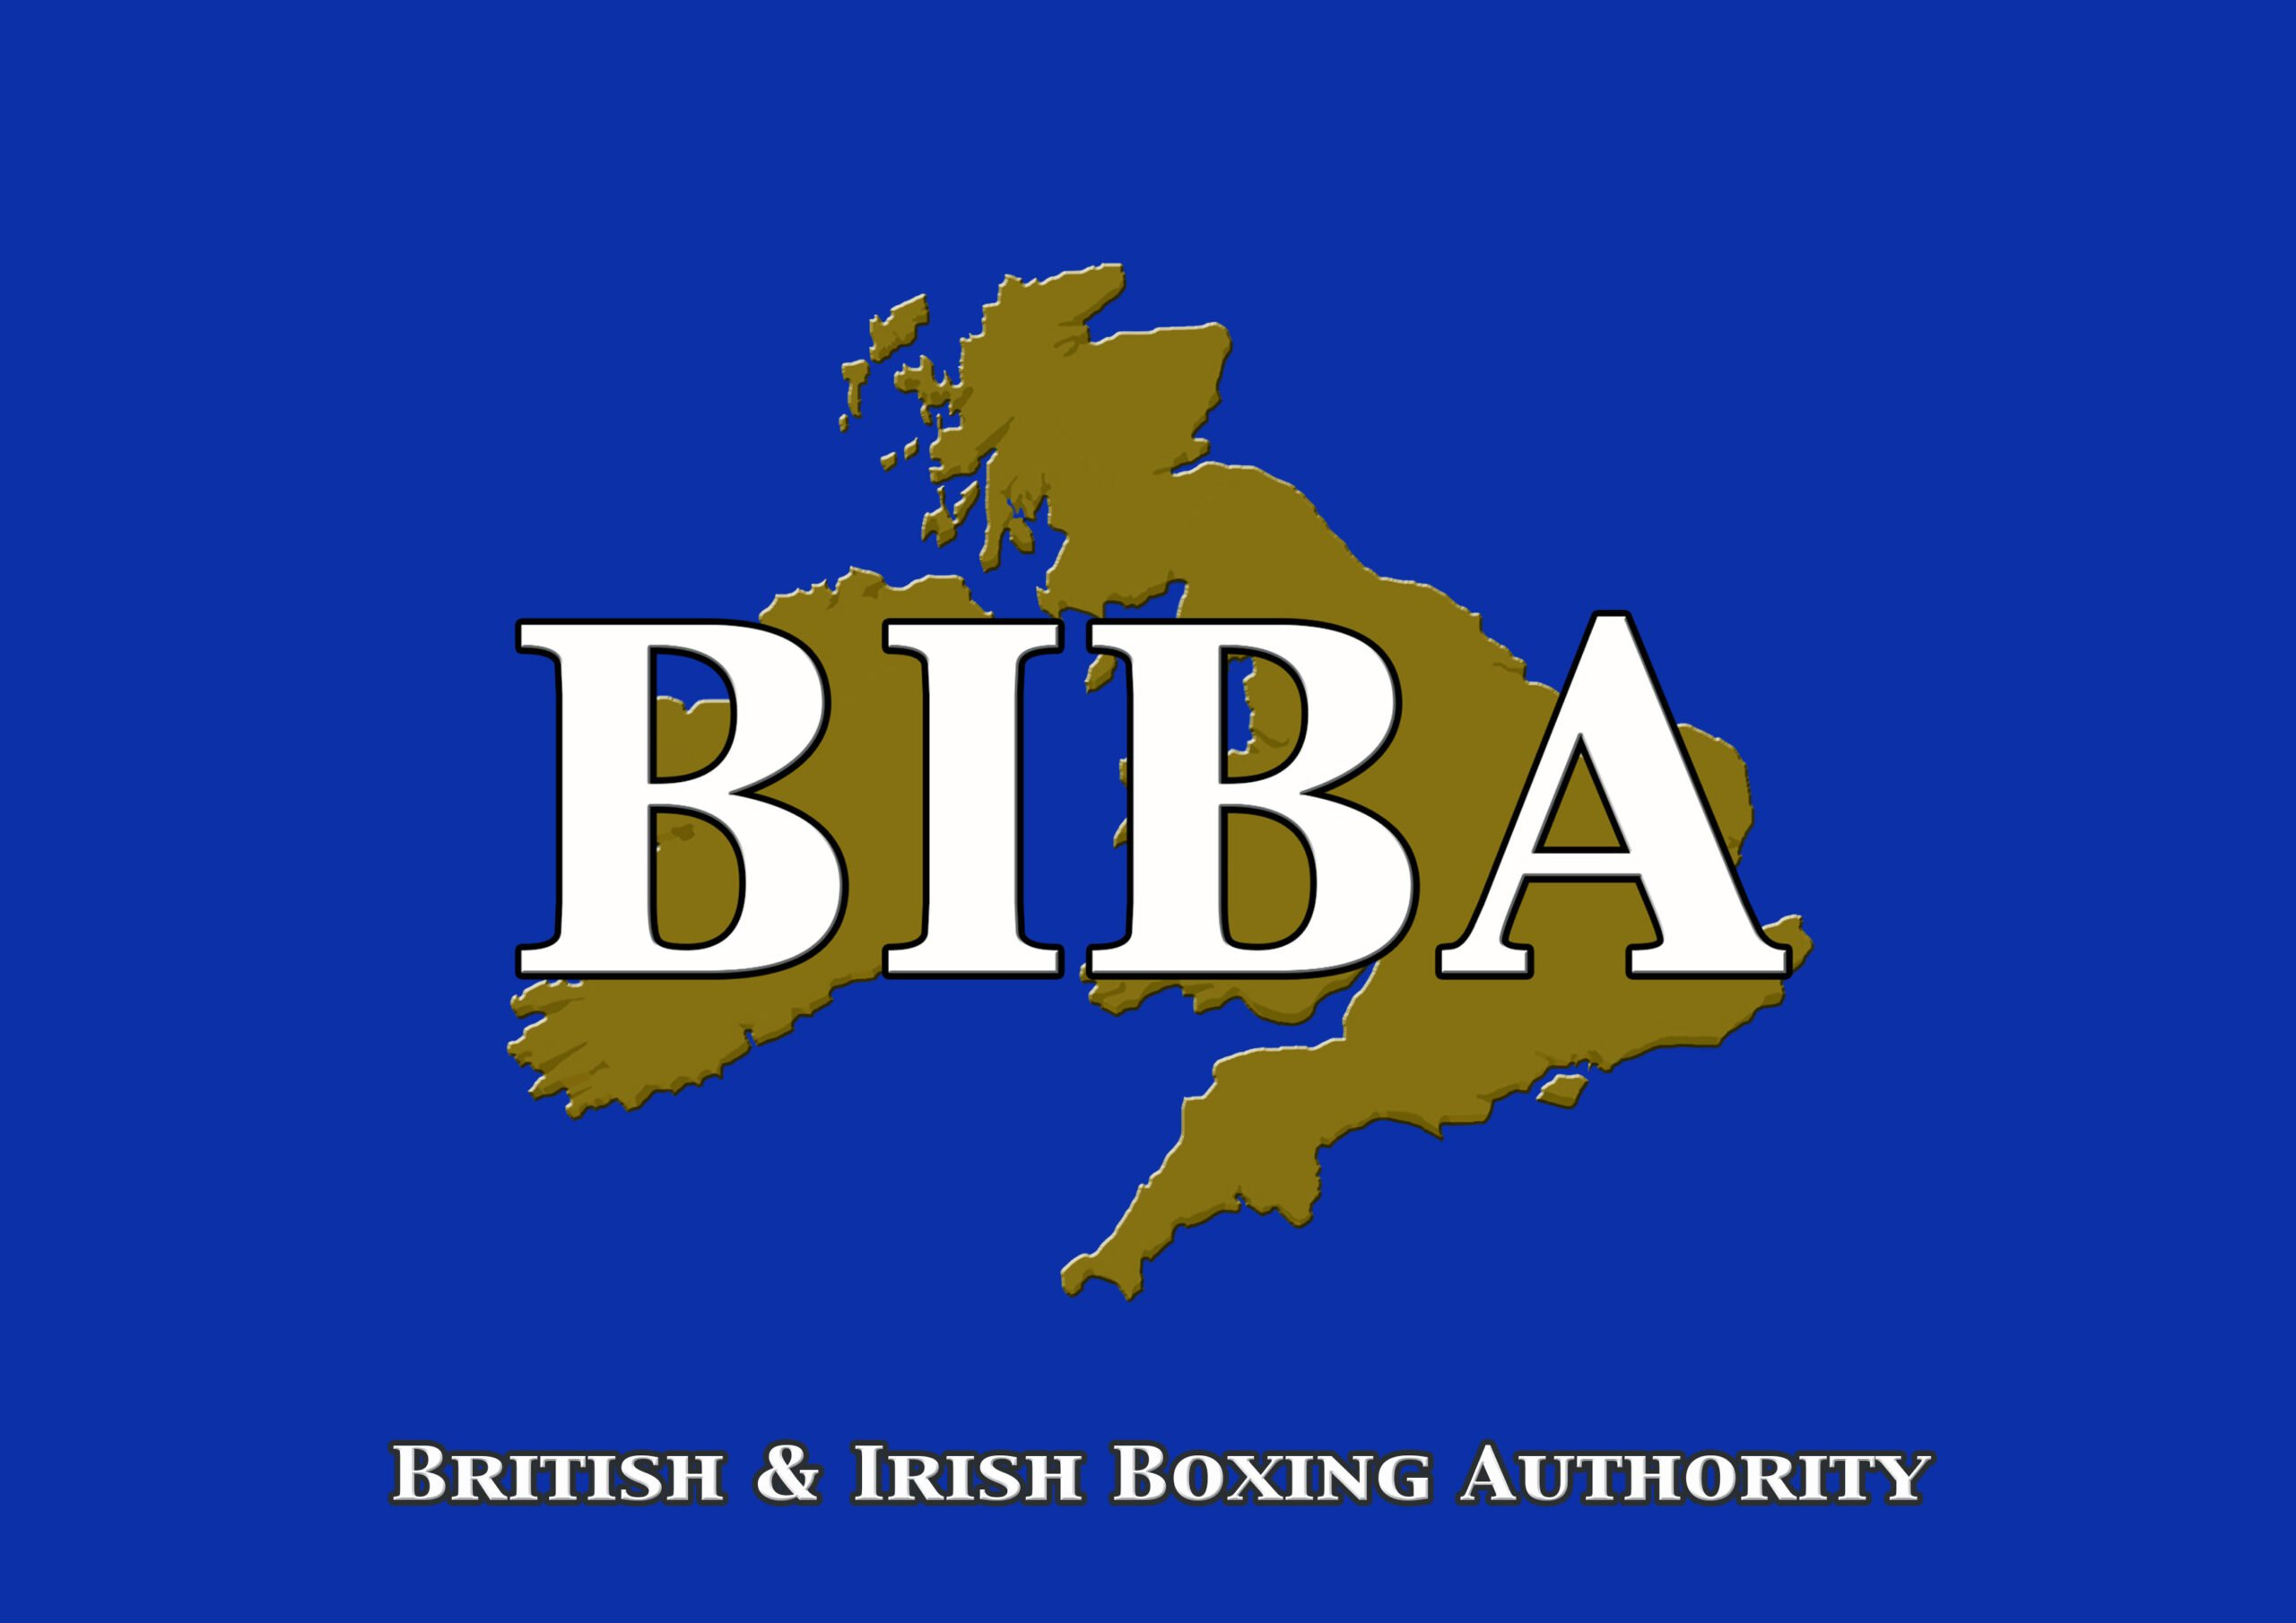 BIBA - The British & Irish Boxing Authority (BIBA) Chief Medical Officer (CMO) Professor M.R. Graham MBChB; JCPTGP; PhD; FRSM; MPhysoc; BASEM; MICR; MCSFS; PCCMH; APIL Expert; FSB issued the following guidelines in order that Professional Boxers and Elite Amateur Boxers may return to Training, Sparring and Ultimately Competition.